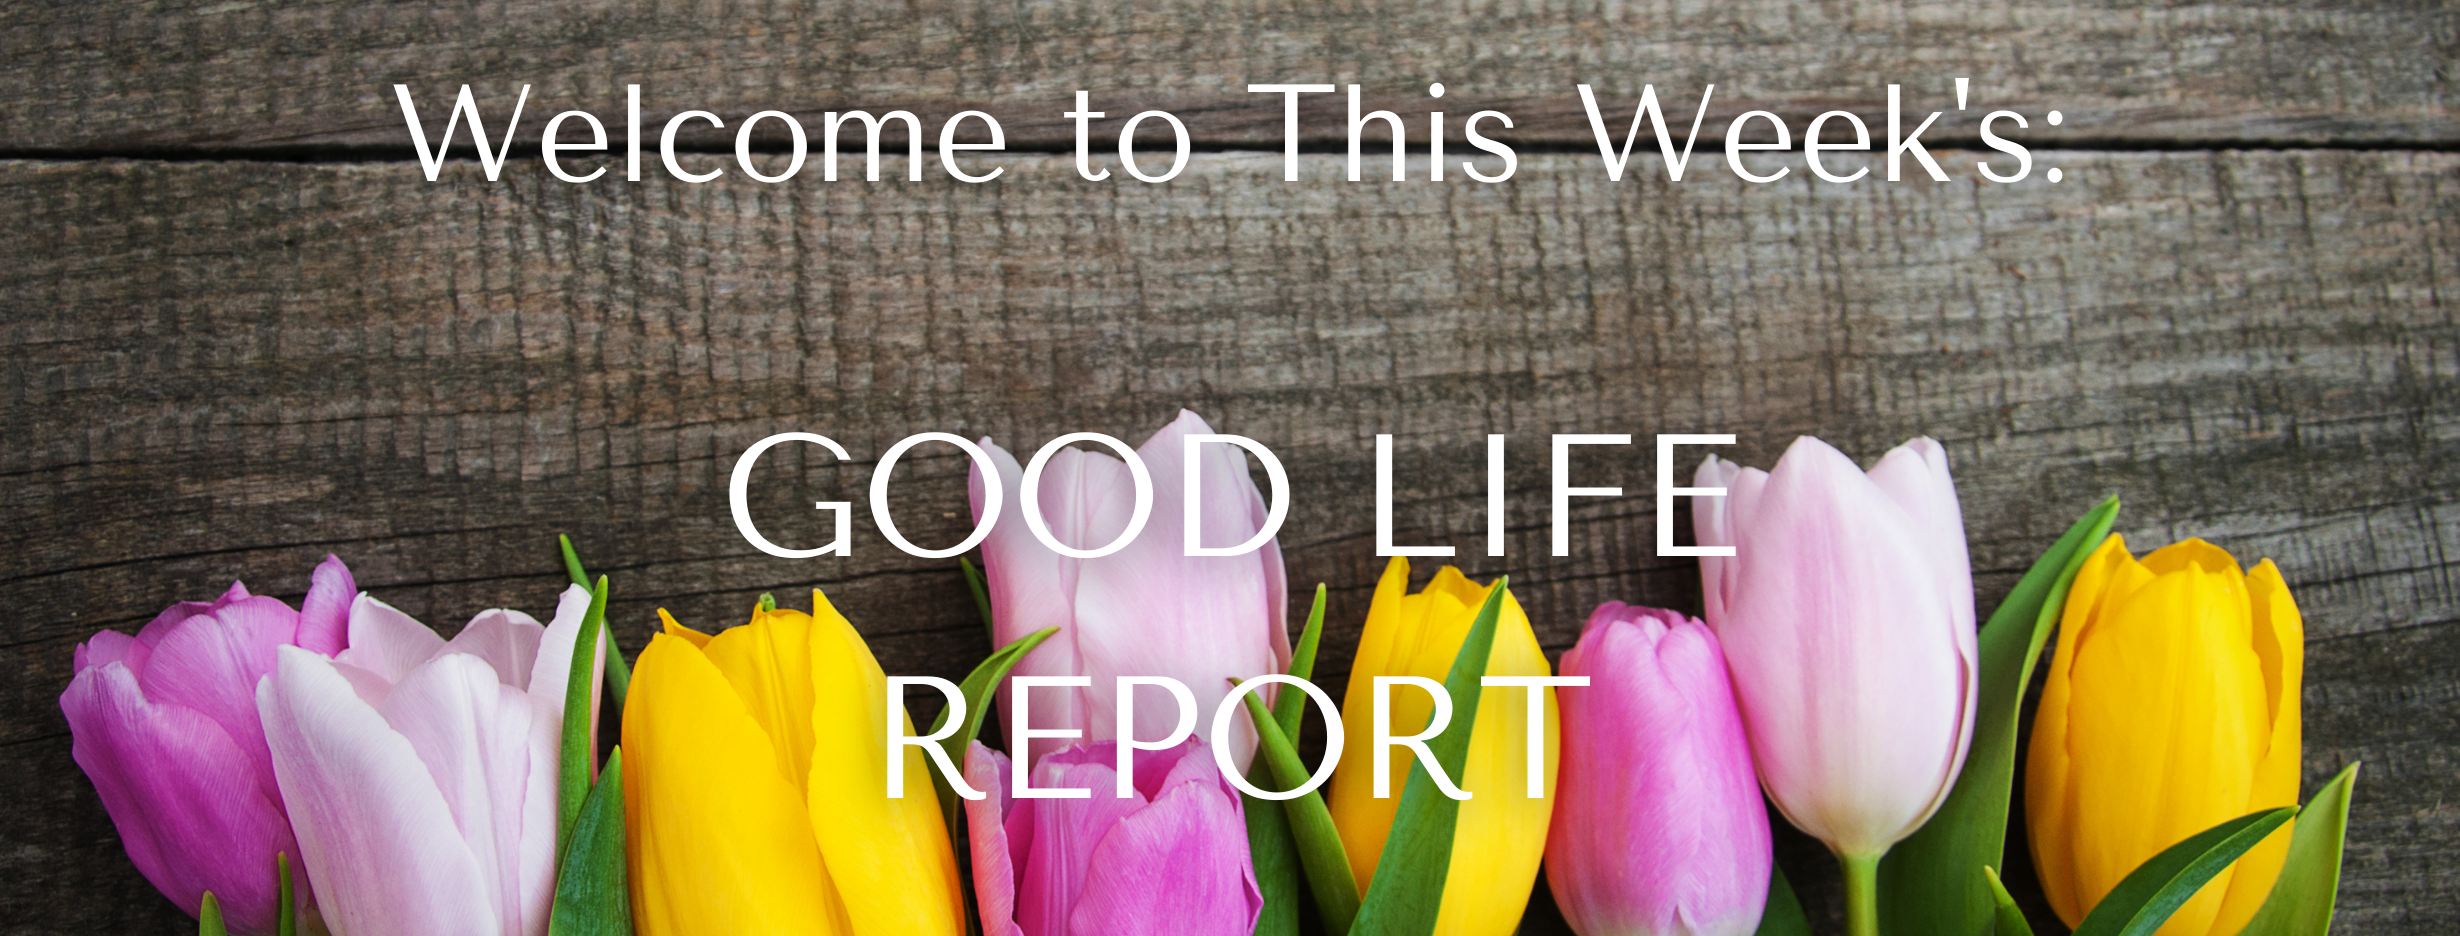 The Good Life Report - The Benefits of a Meat-Free Day Thumbnail